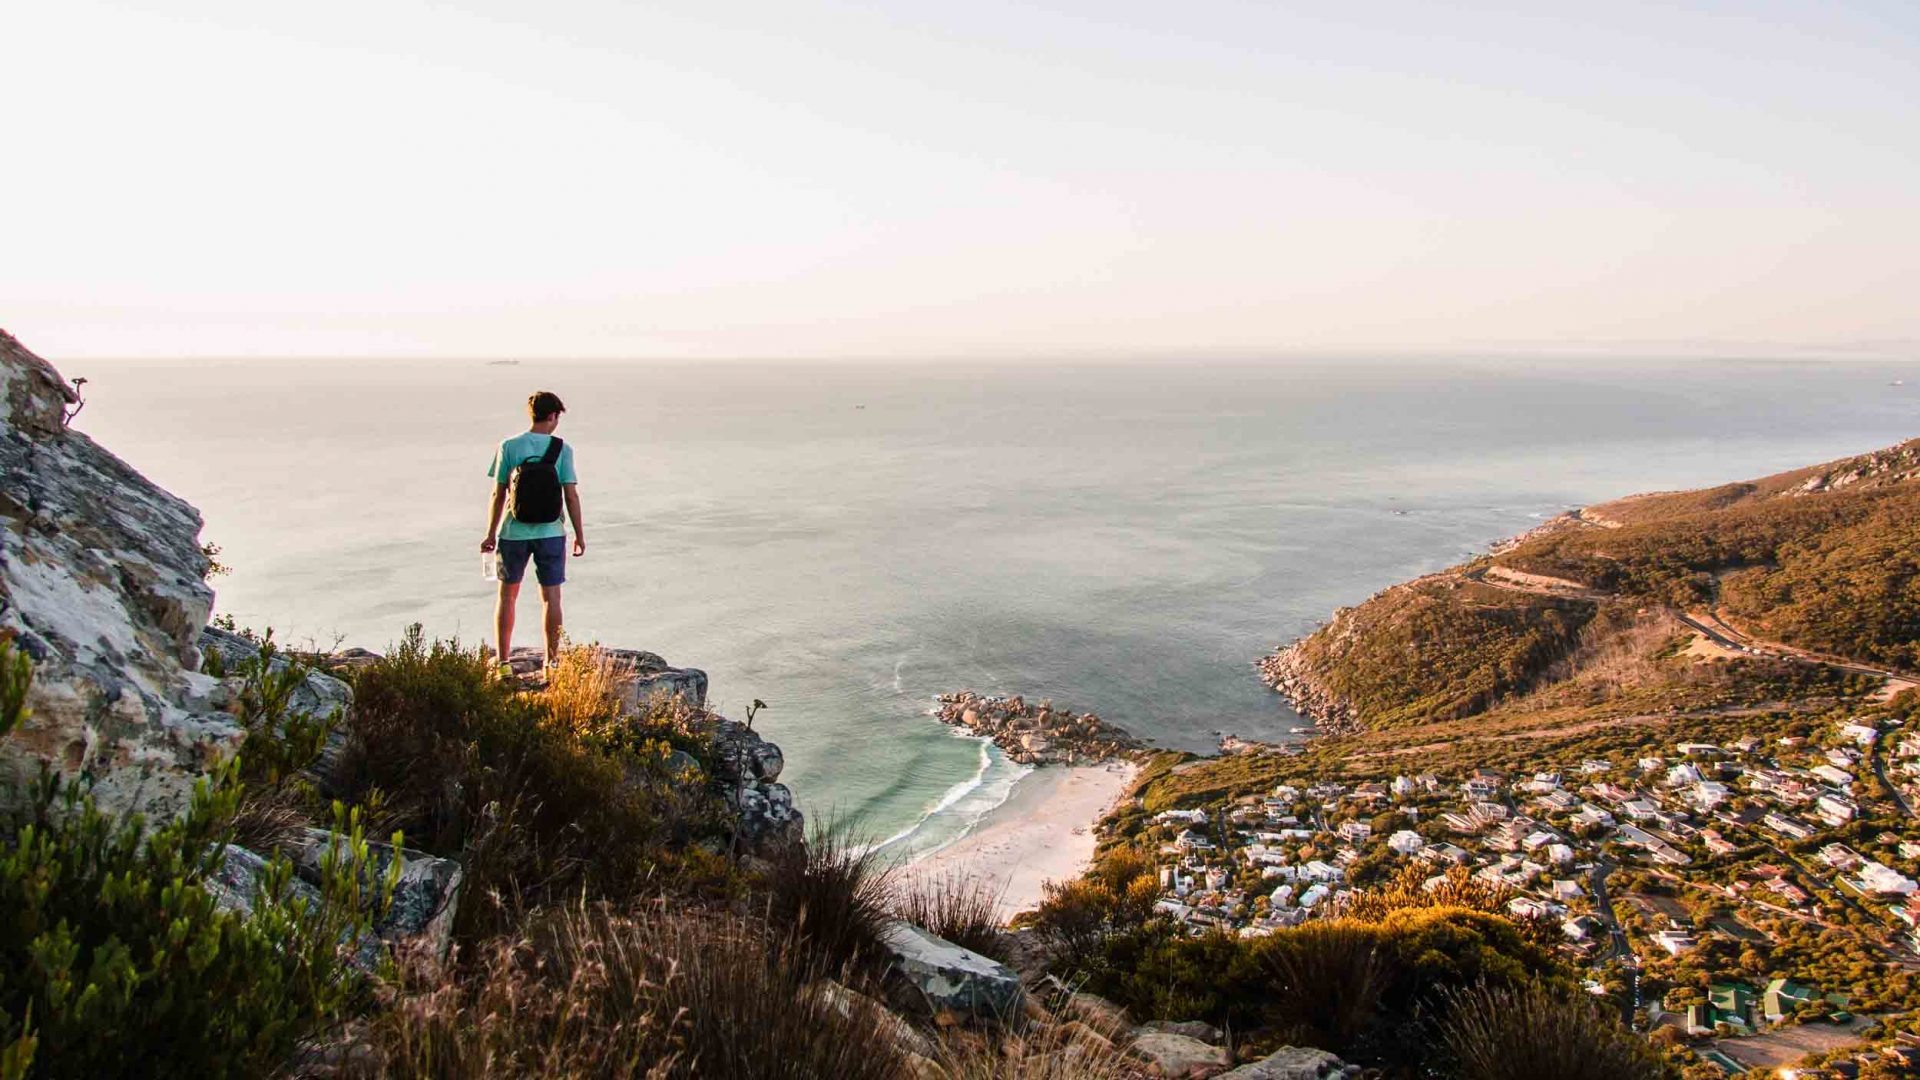 Hiking over Llandudno, Cape Town, South Africa.